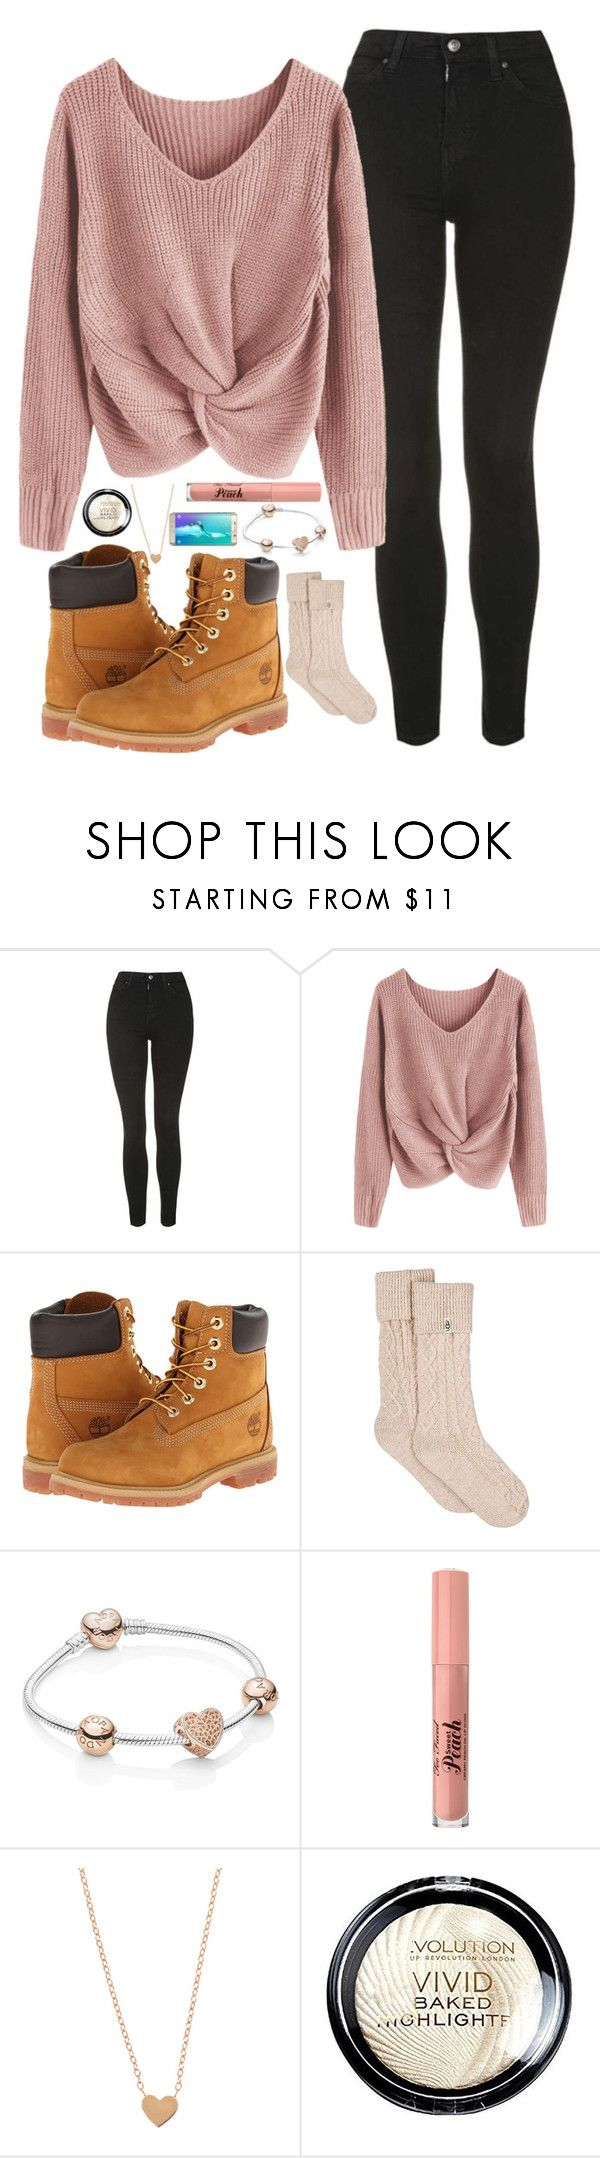 """""""Winter boots are back! 👢"""" by lucy-wild on Polyvore featuring Topshop, Timberland, UGG, Pandora, Too Faced Cosmetics and Samsung"""